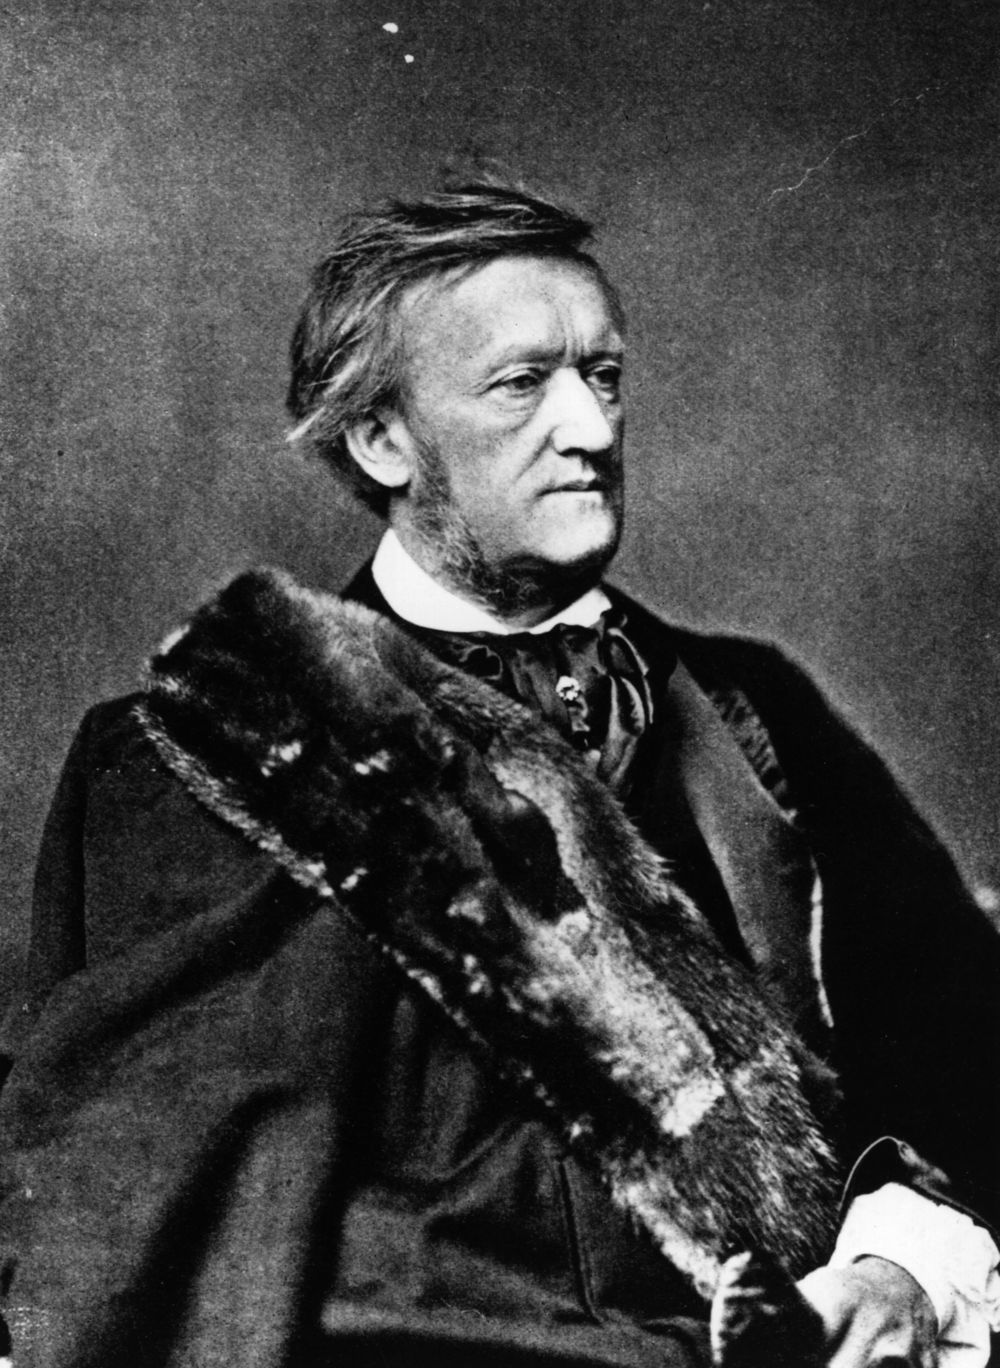 Richard Wagner popularized the term Gesamtkunstwerk to misprophesize what would be the next cultural juggernaut.